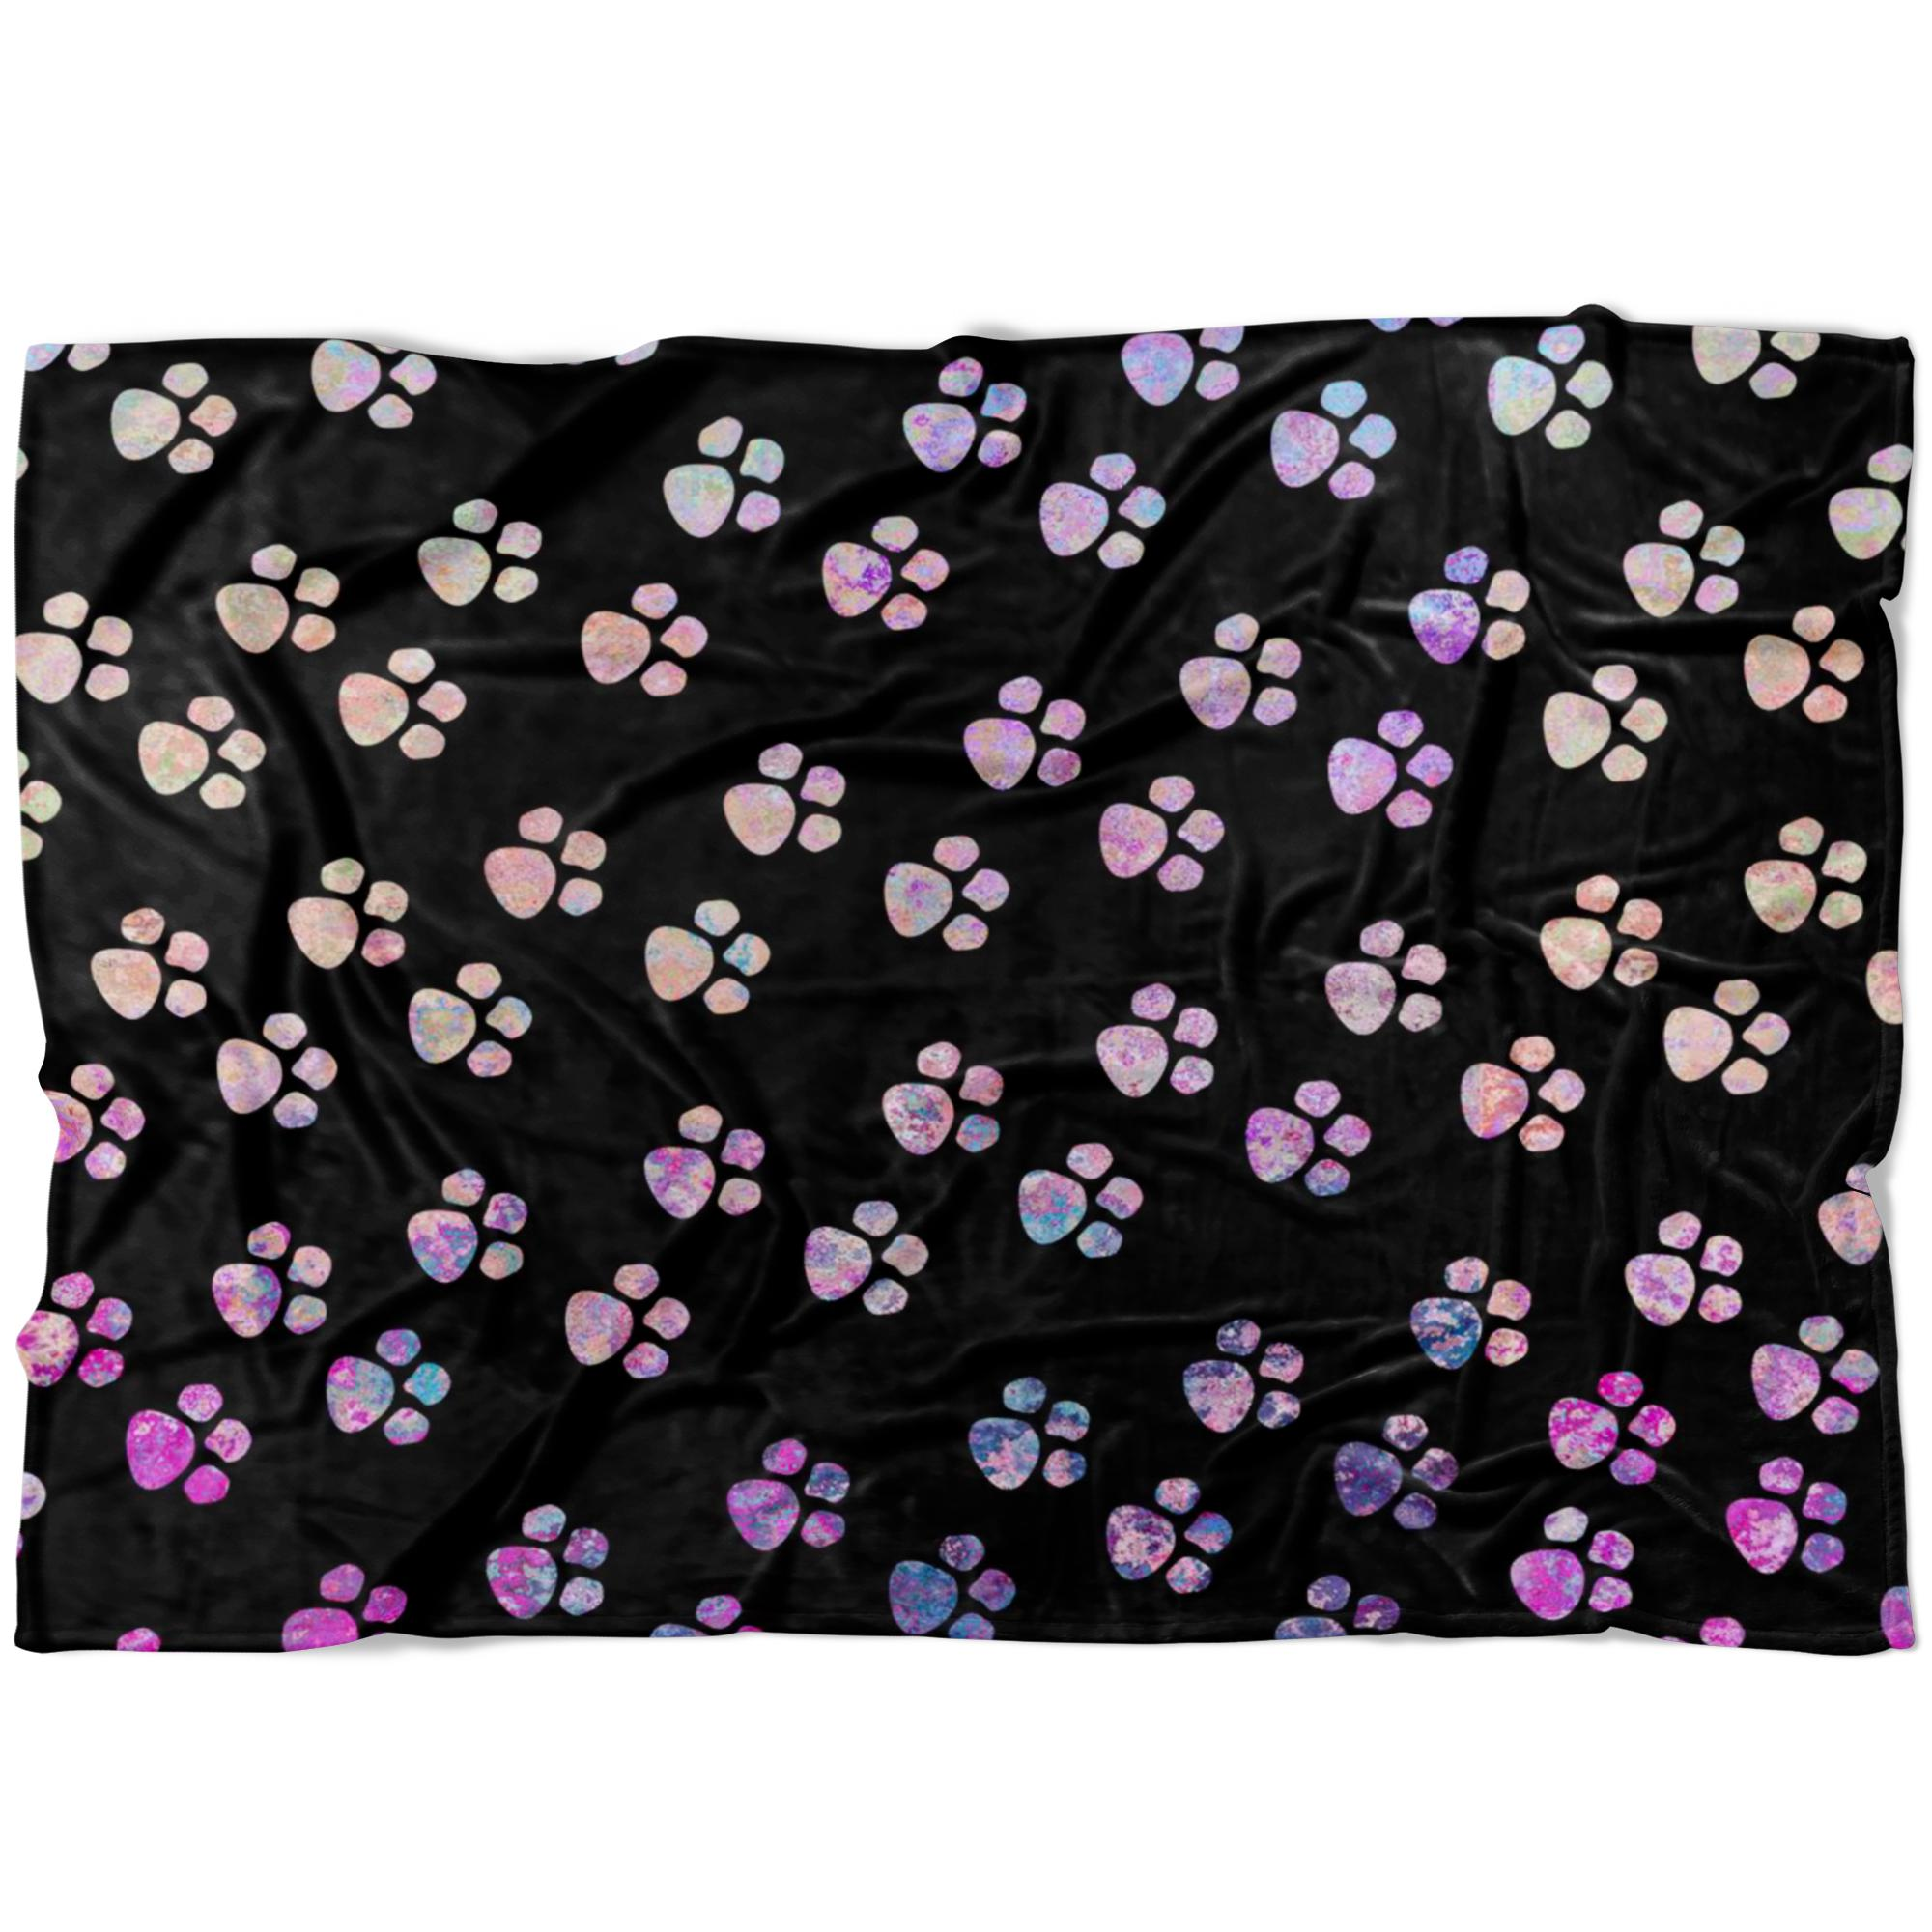 Watercolor Paws Fleece Blanket-Blankets-I love Veterinary